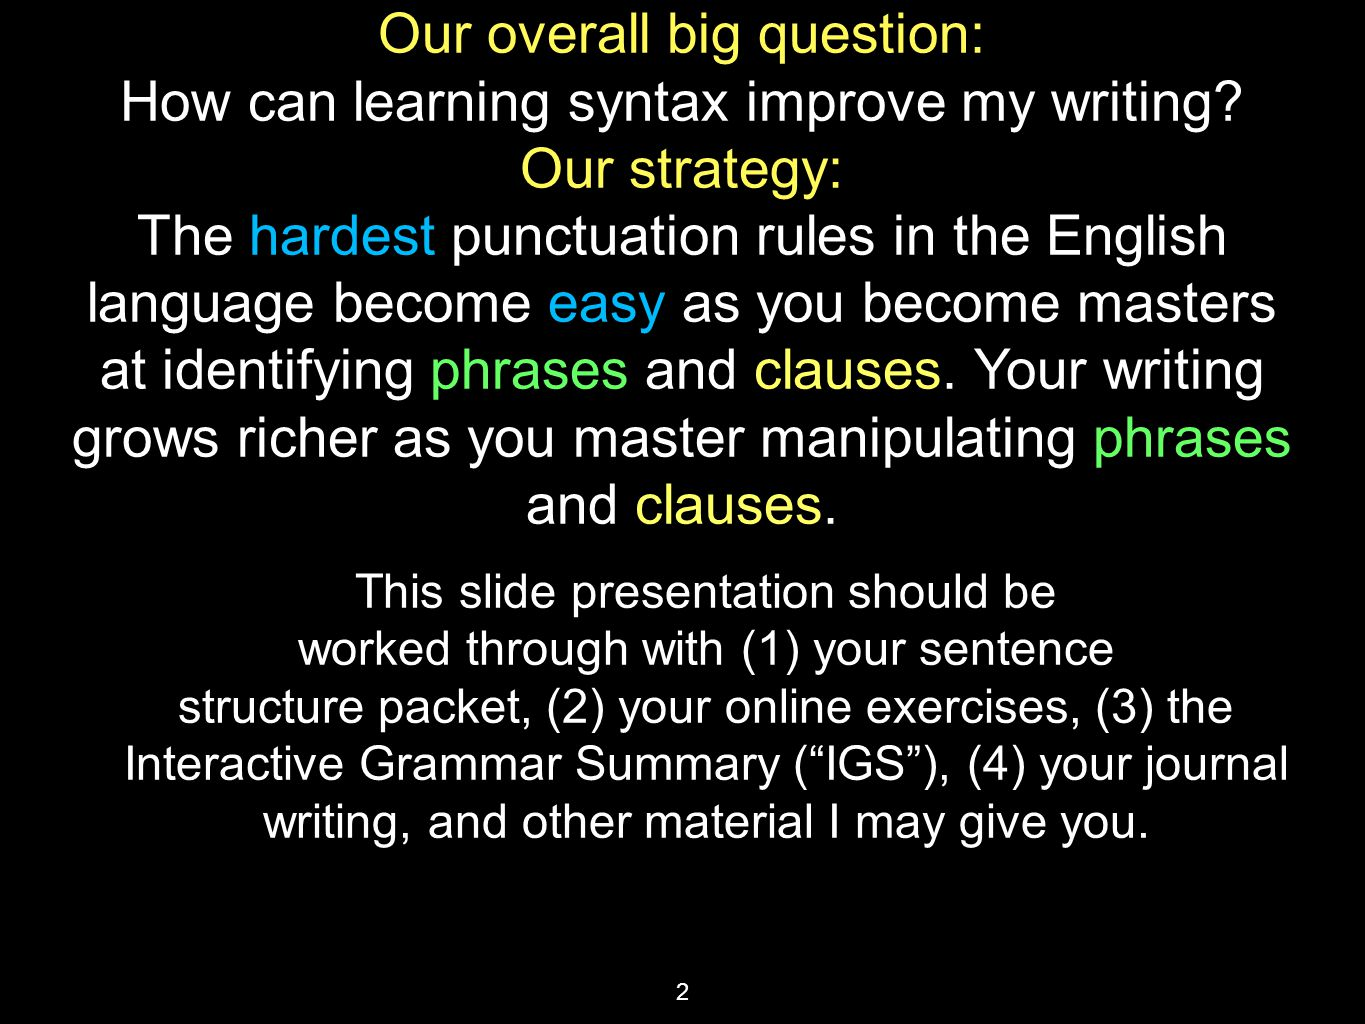 ten simple ways to improve my english essay Whether you have a learning disability in writing or just want to improve your writing grades, learning how to follow this basic essay writing method will improve your writing.